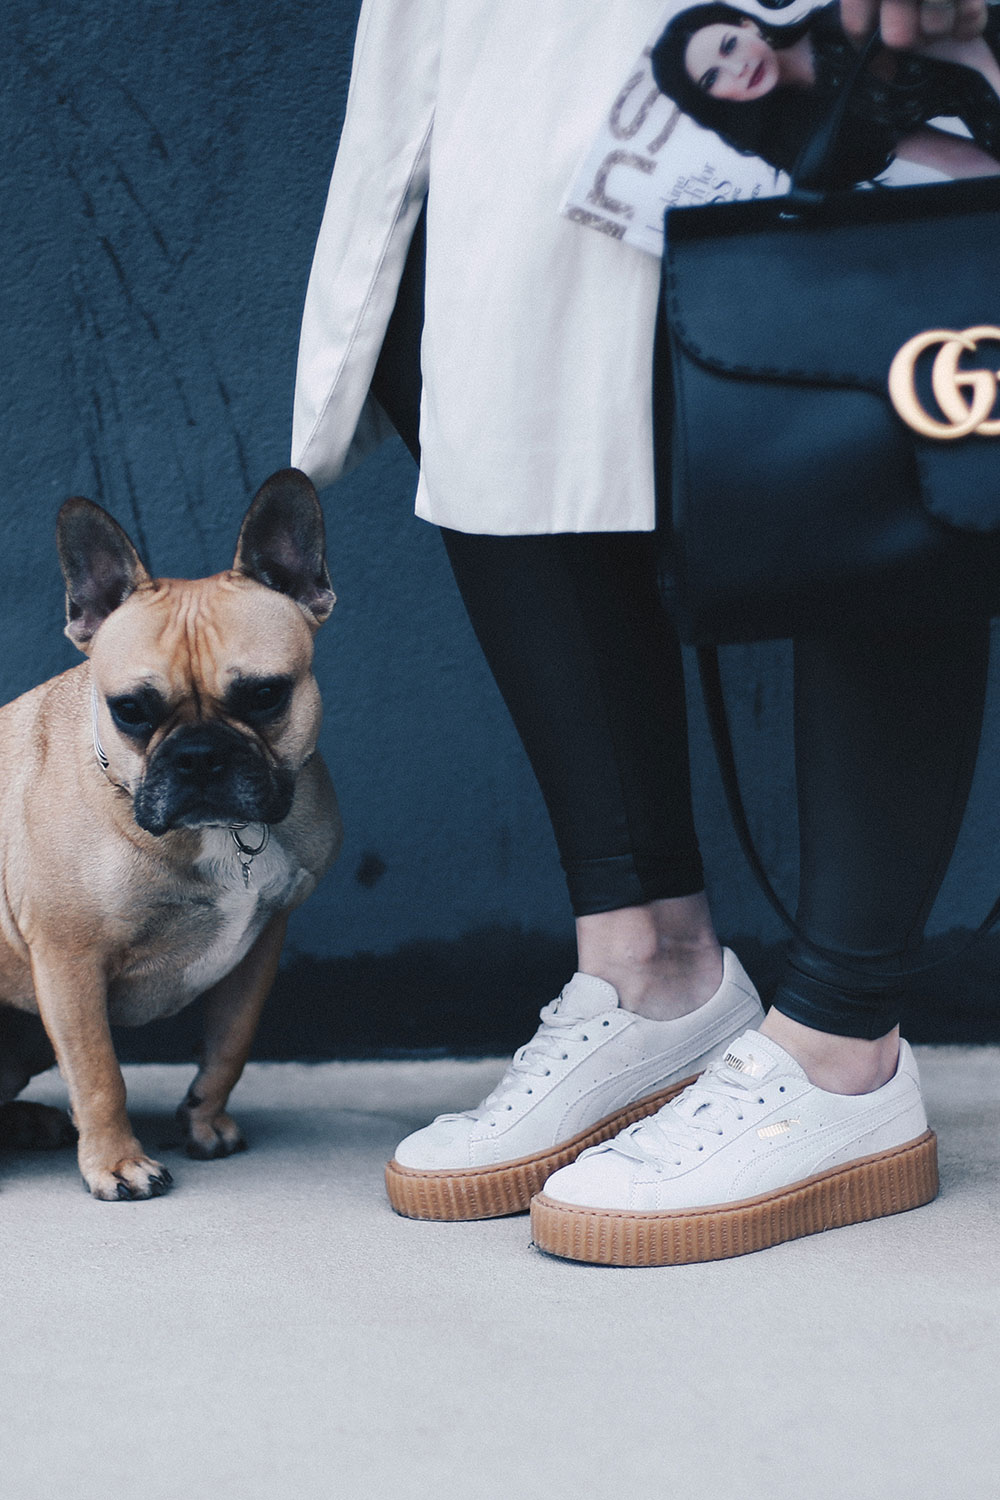 PUMA Creeper Sneakers, Fake Leder Leggings, Gucci GG Marmont Tasche, Sneaker Outfit, Trenchcoat, Blazer, Glockenärmel, Trompetenärmel, Fashion Blog, Outfitblog, Modeblog, whoismocca.com